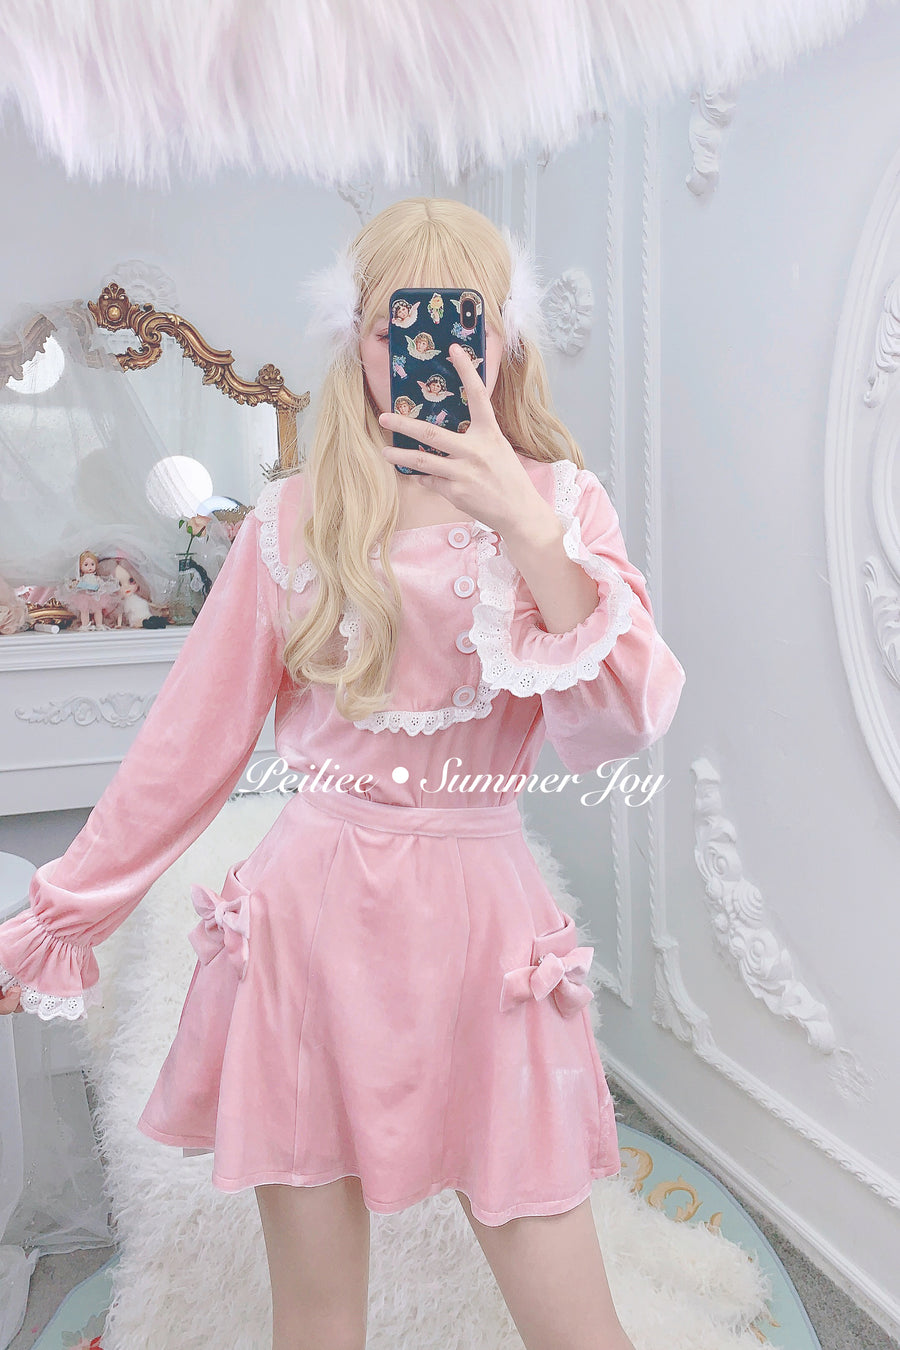 [Limited Edition] Princess Angelina velvet dress set - Peiliee Shop